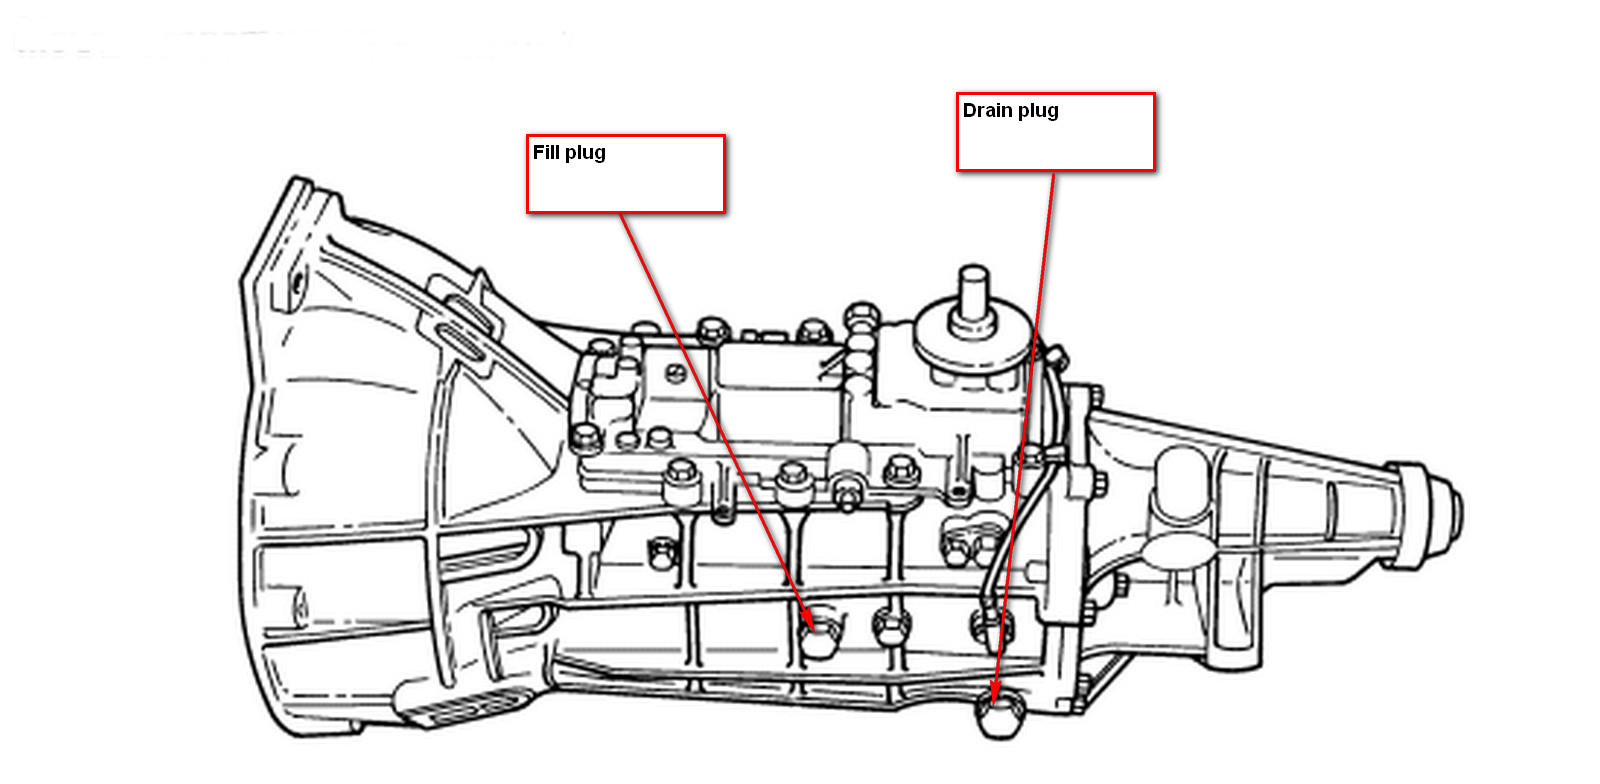 Diagram Of 1999 Ford Zf Manual Transmission Speed Sensors